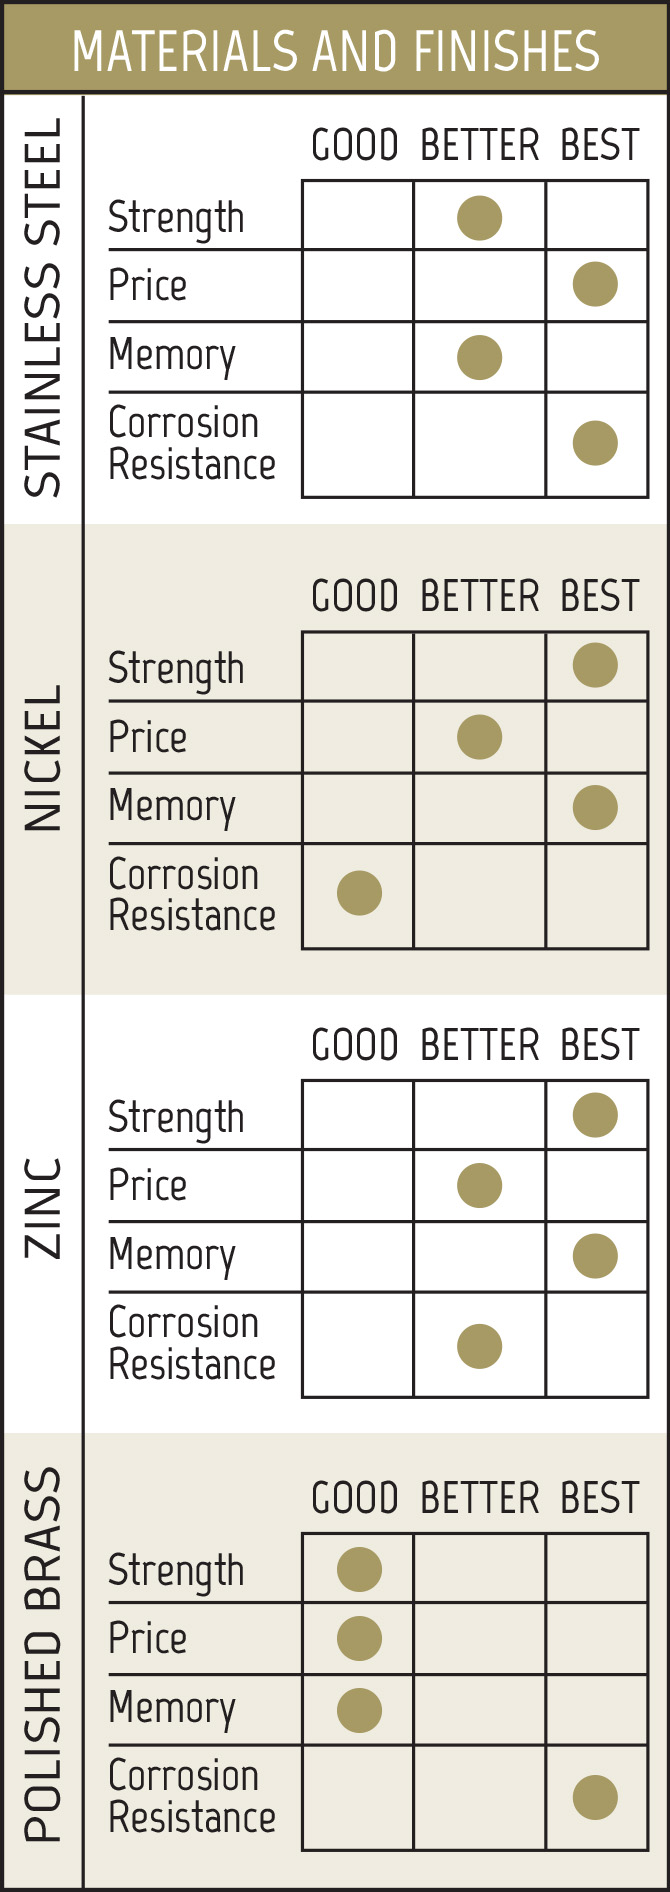 Material finishes comparison chart